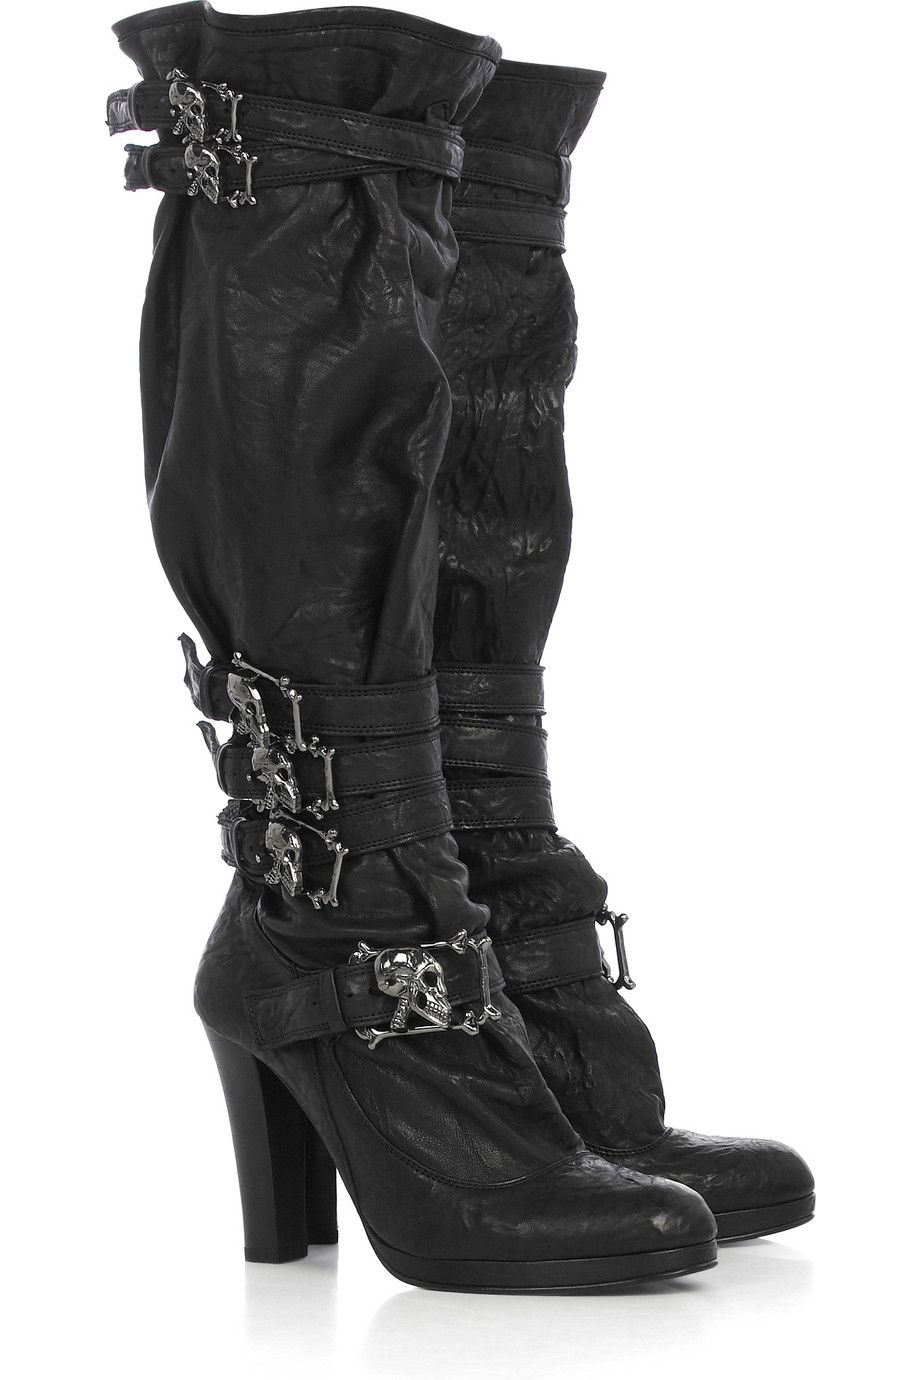 Thomas Wylde Skull Cross Knee Boots buy cheap shop visit new cheap price shop offer online high quality sale online authentic online Kpij8tAH